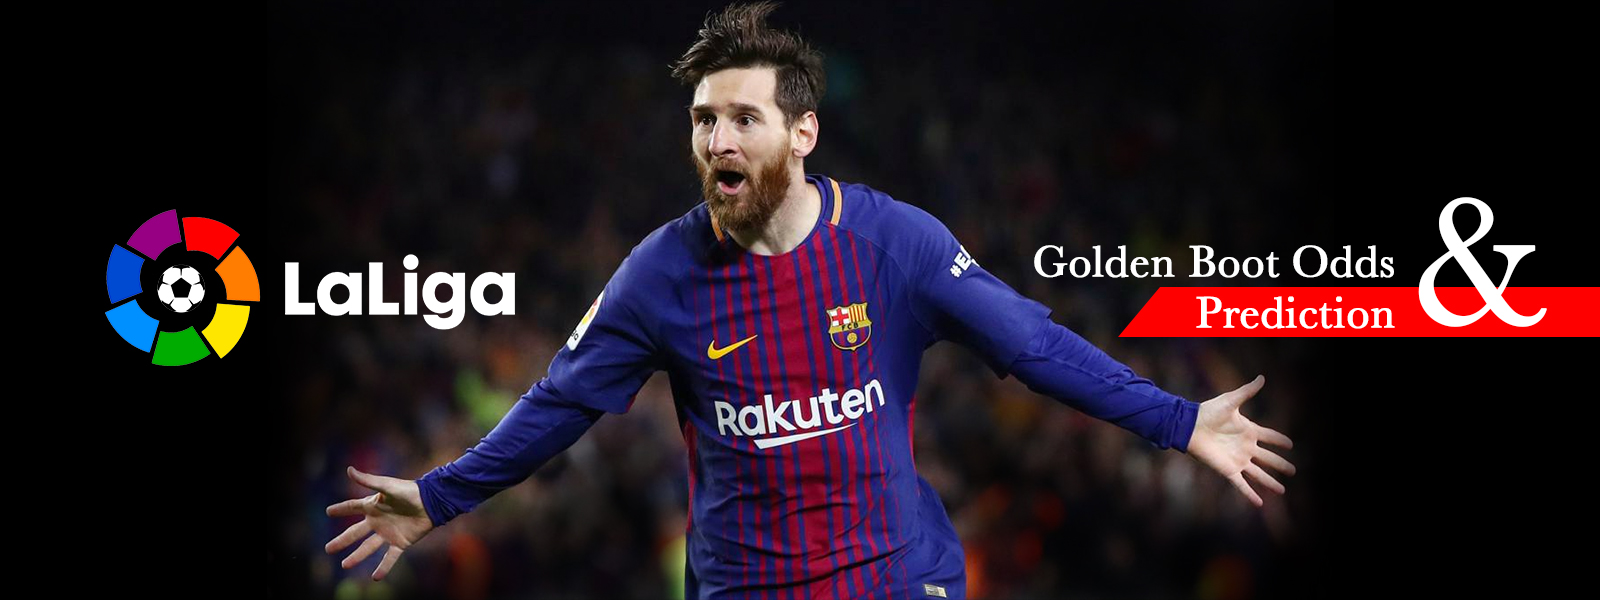 La Liga Golden Boot Odds And Prediction